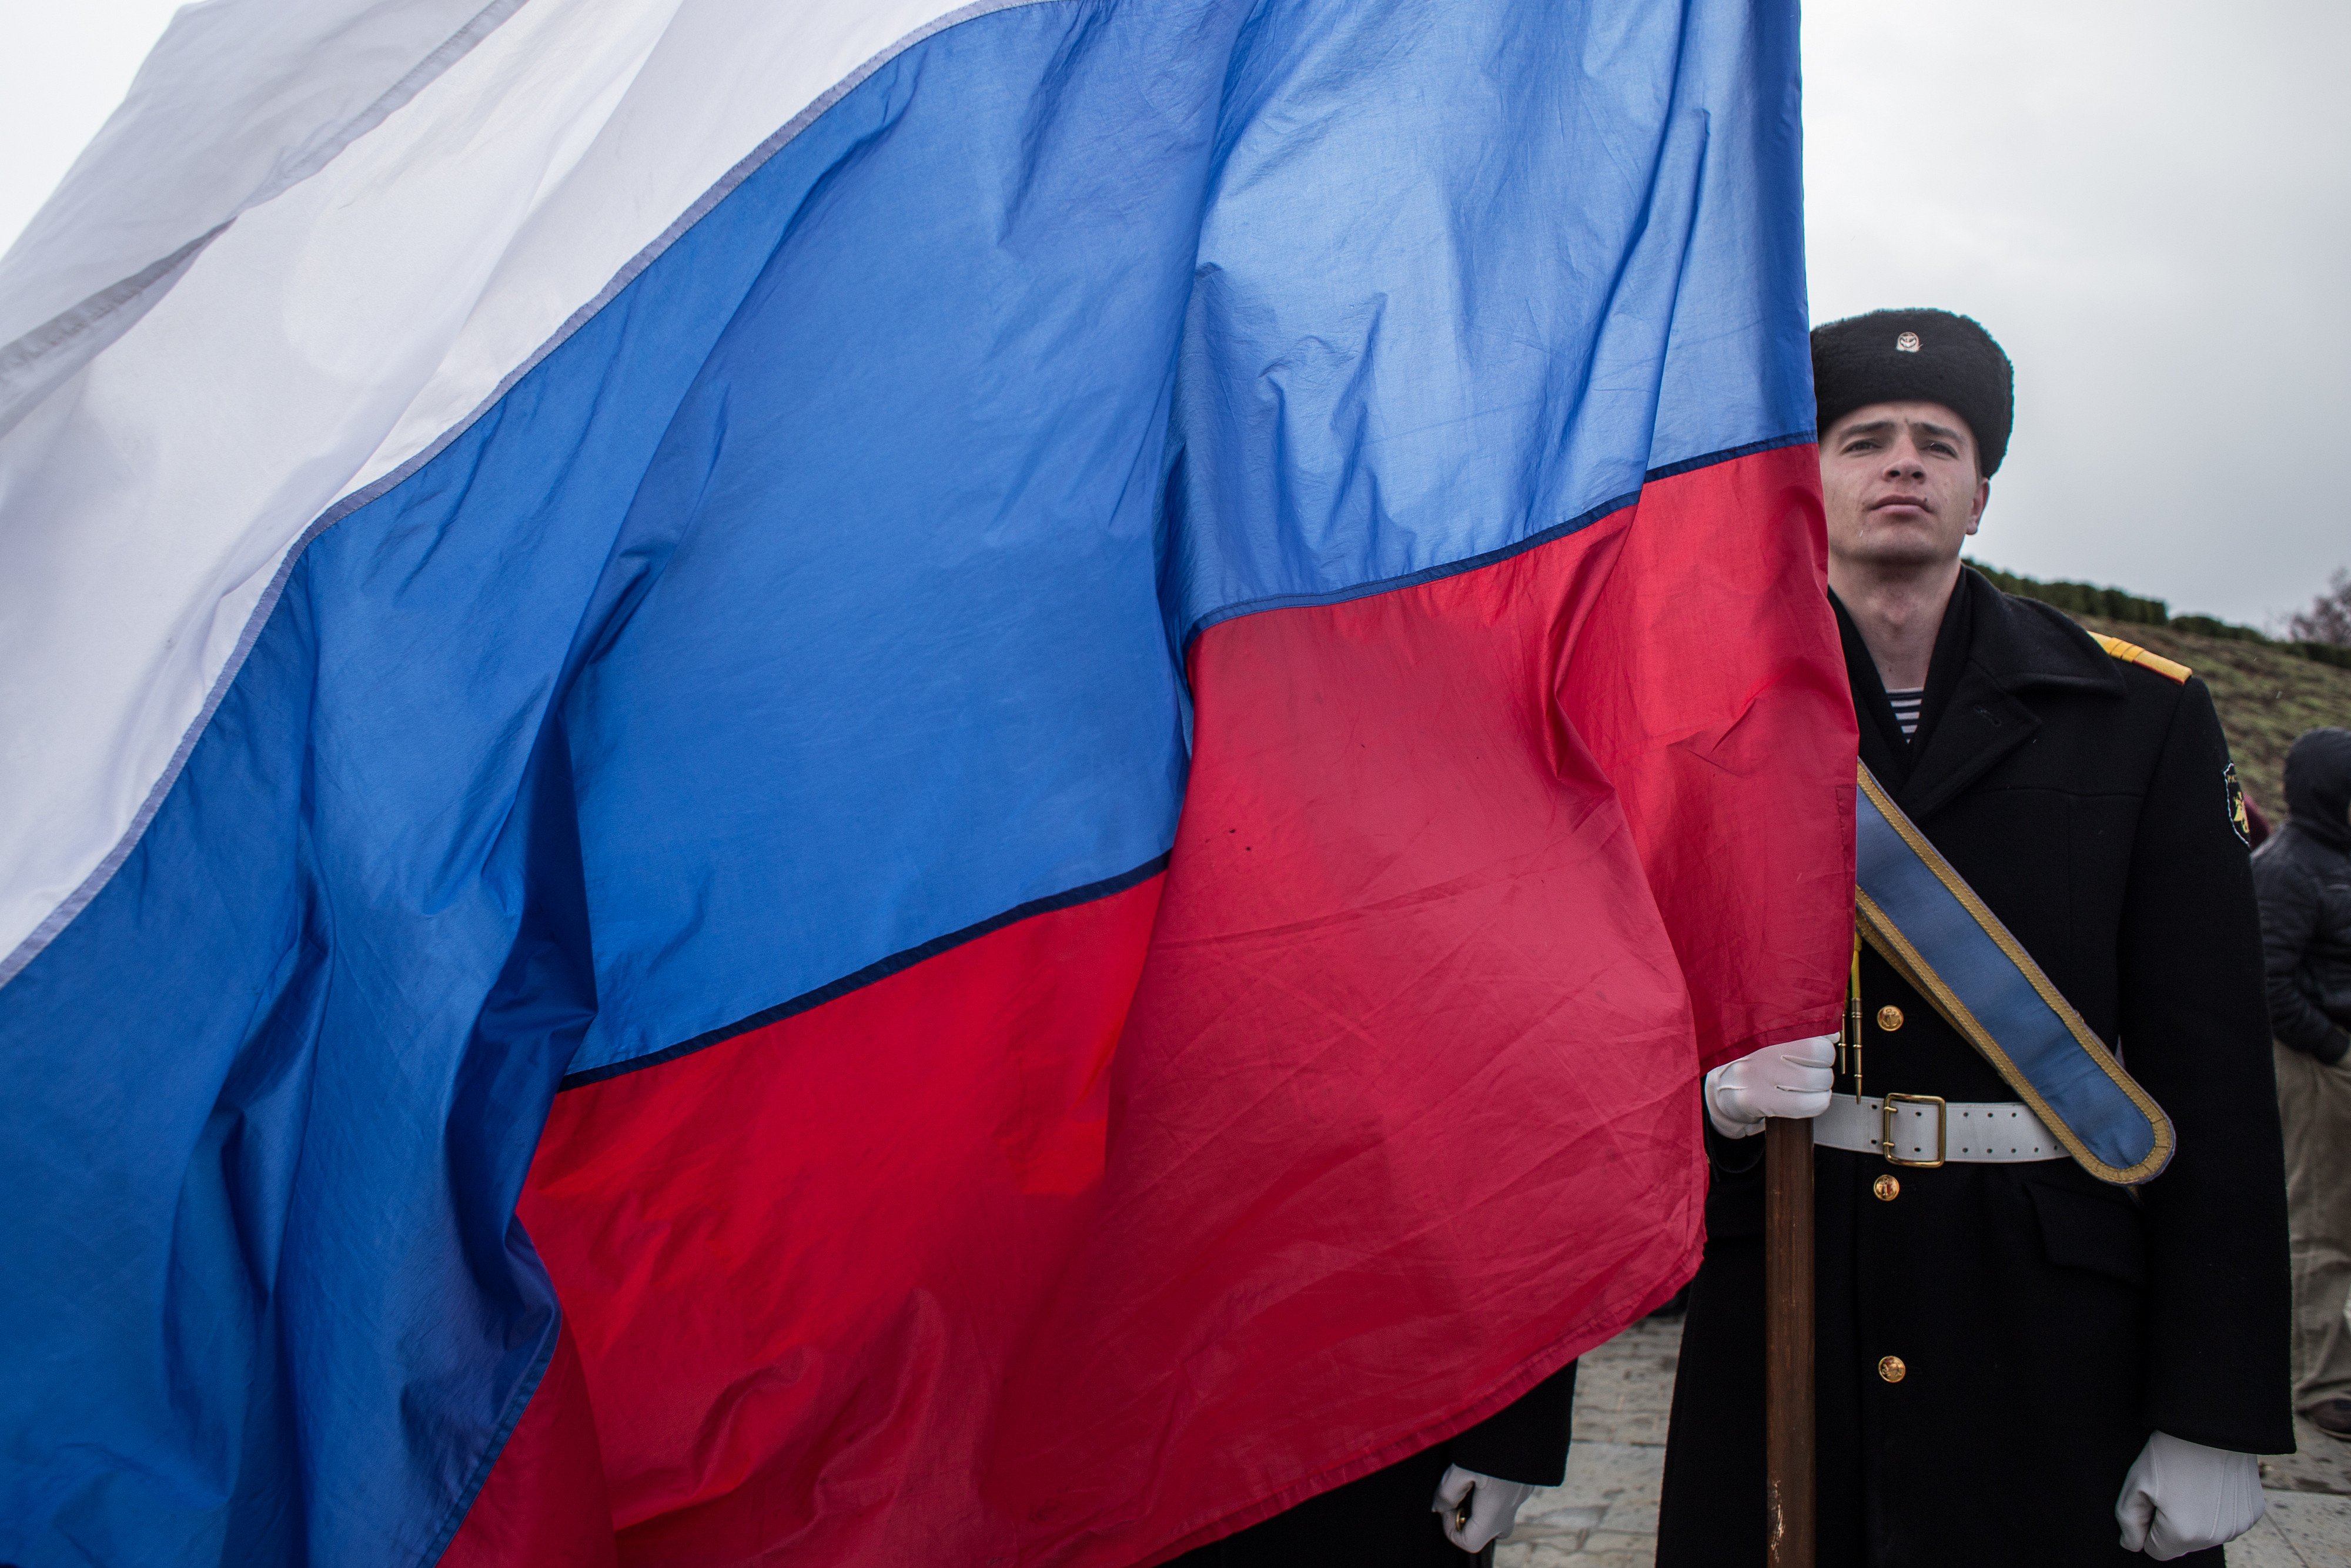 A Navy sailor holds a Russian flag as people celebrate the first anniversary of the signing of the decree on the annexation of the Crimea by the Russian Federation, on March 18, 2015 in Sevastopol, Crimea.